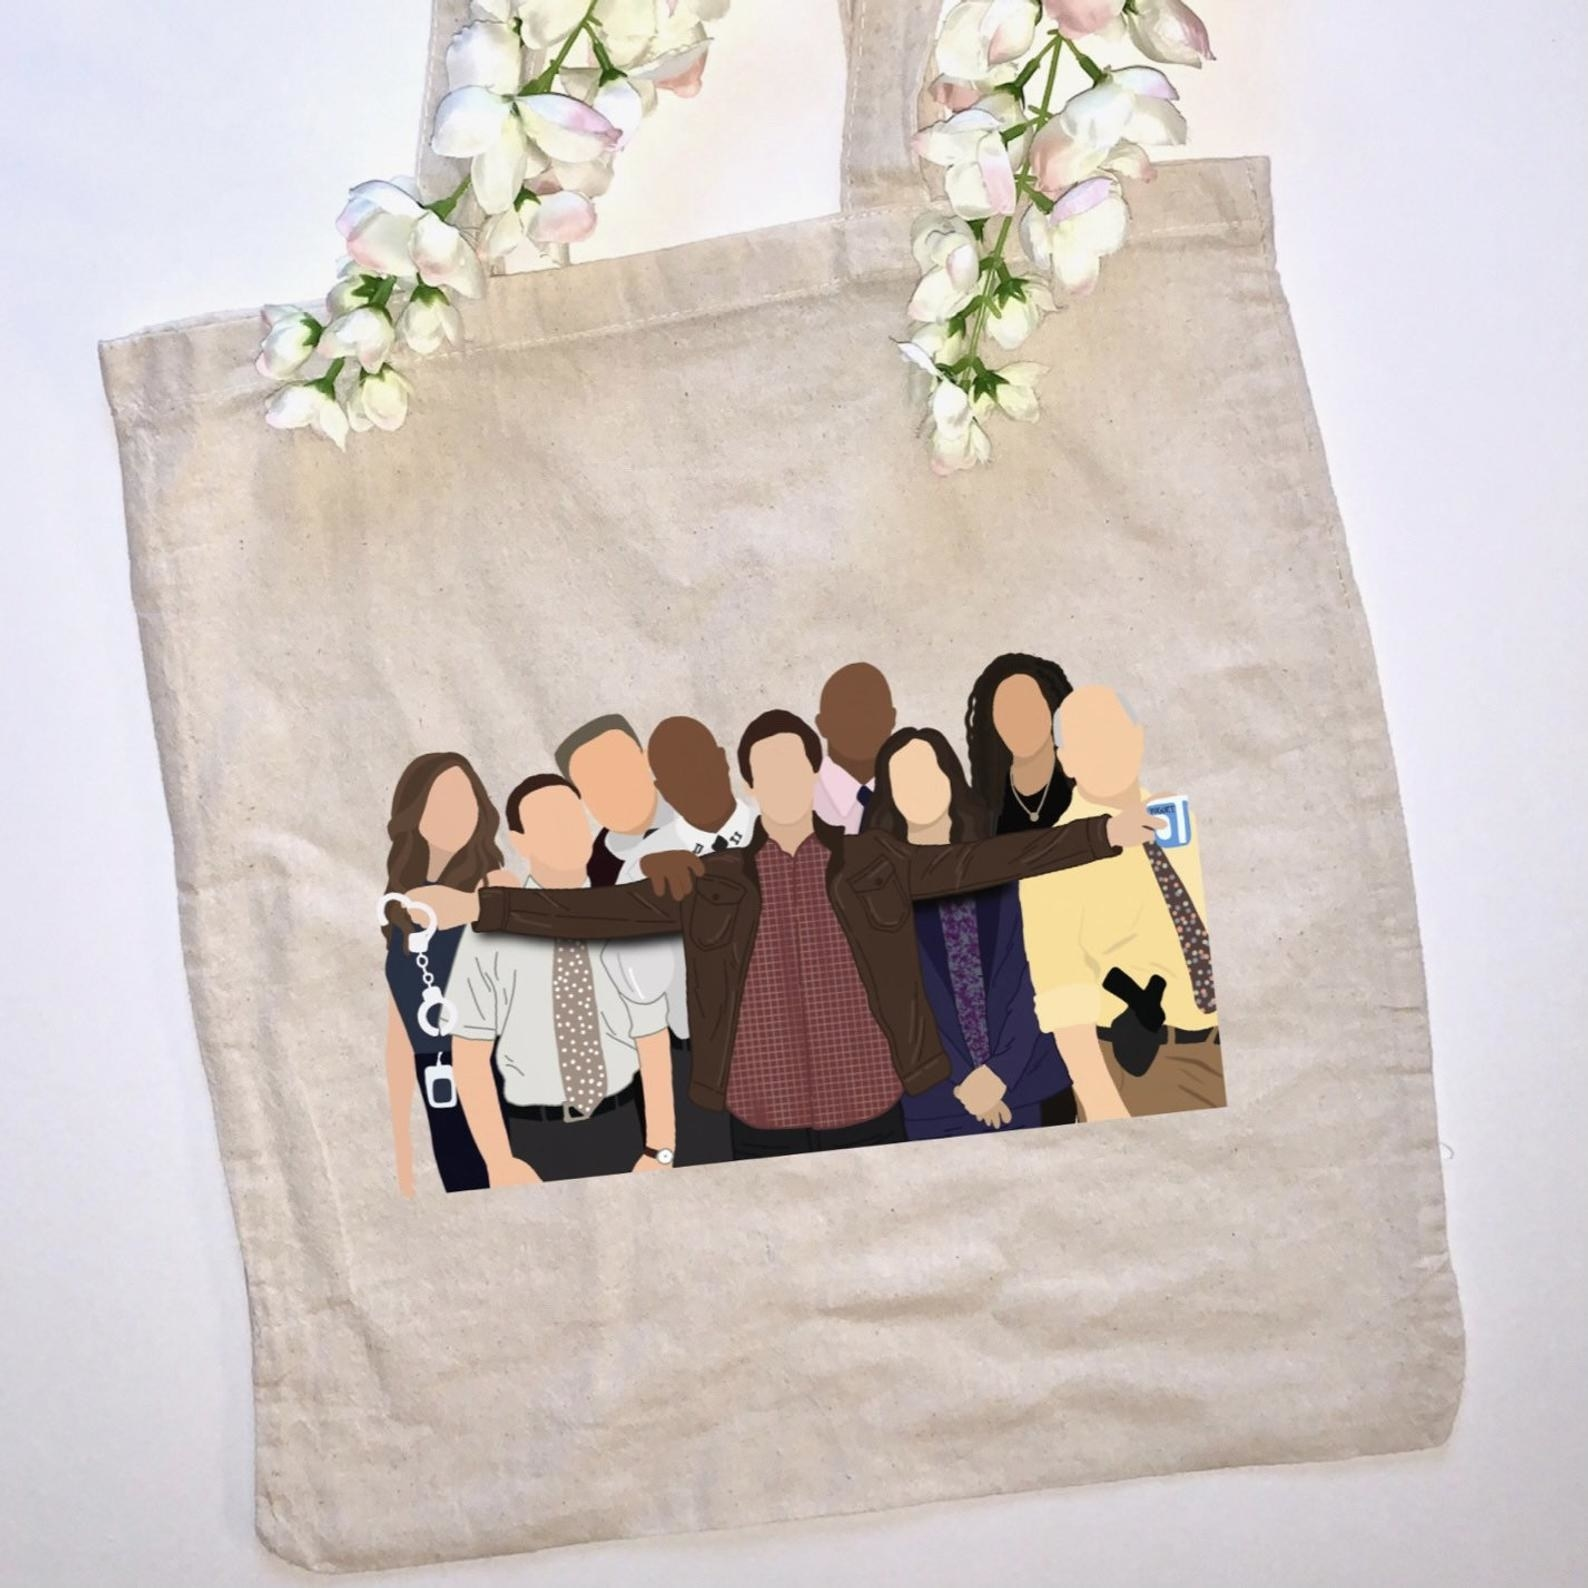 Minimalist art of the whole team on a canvas tote